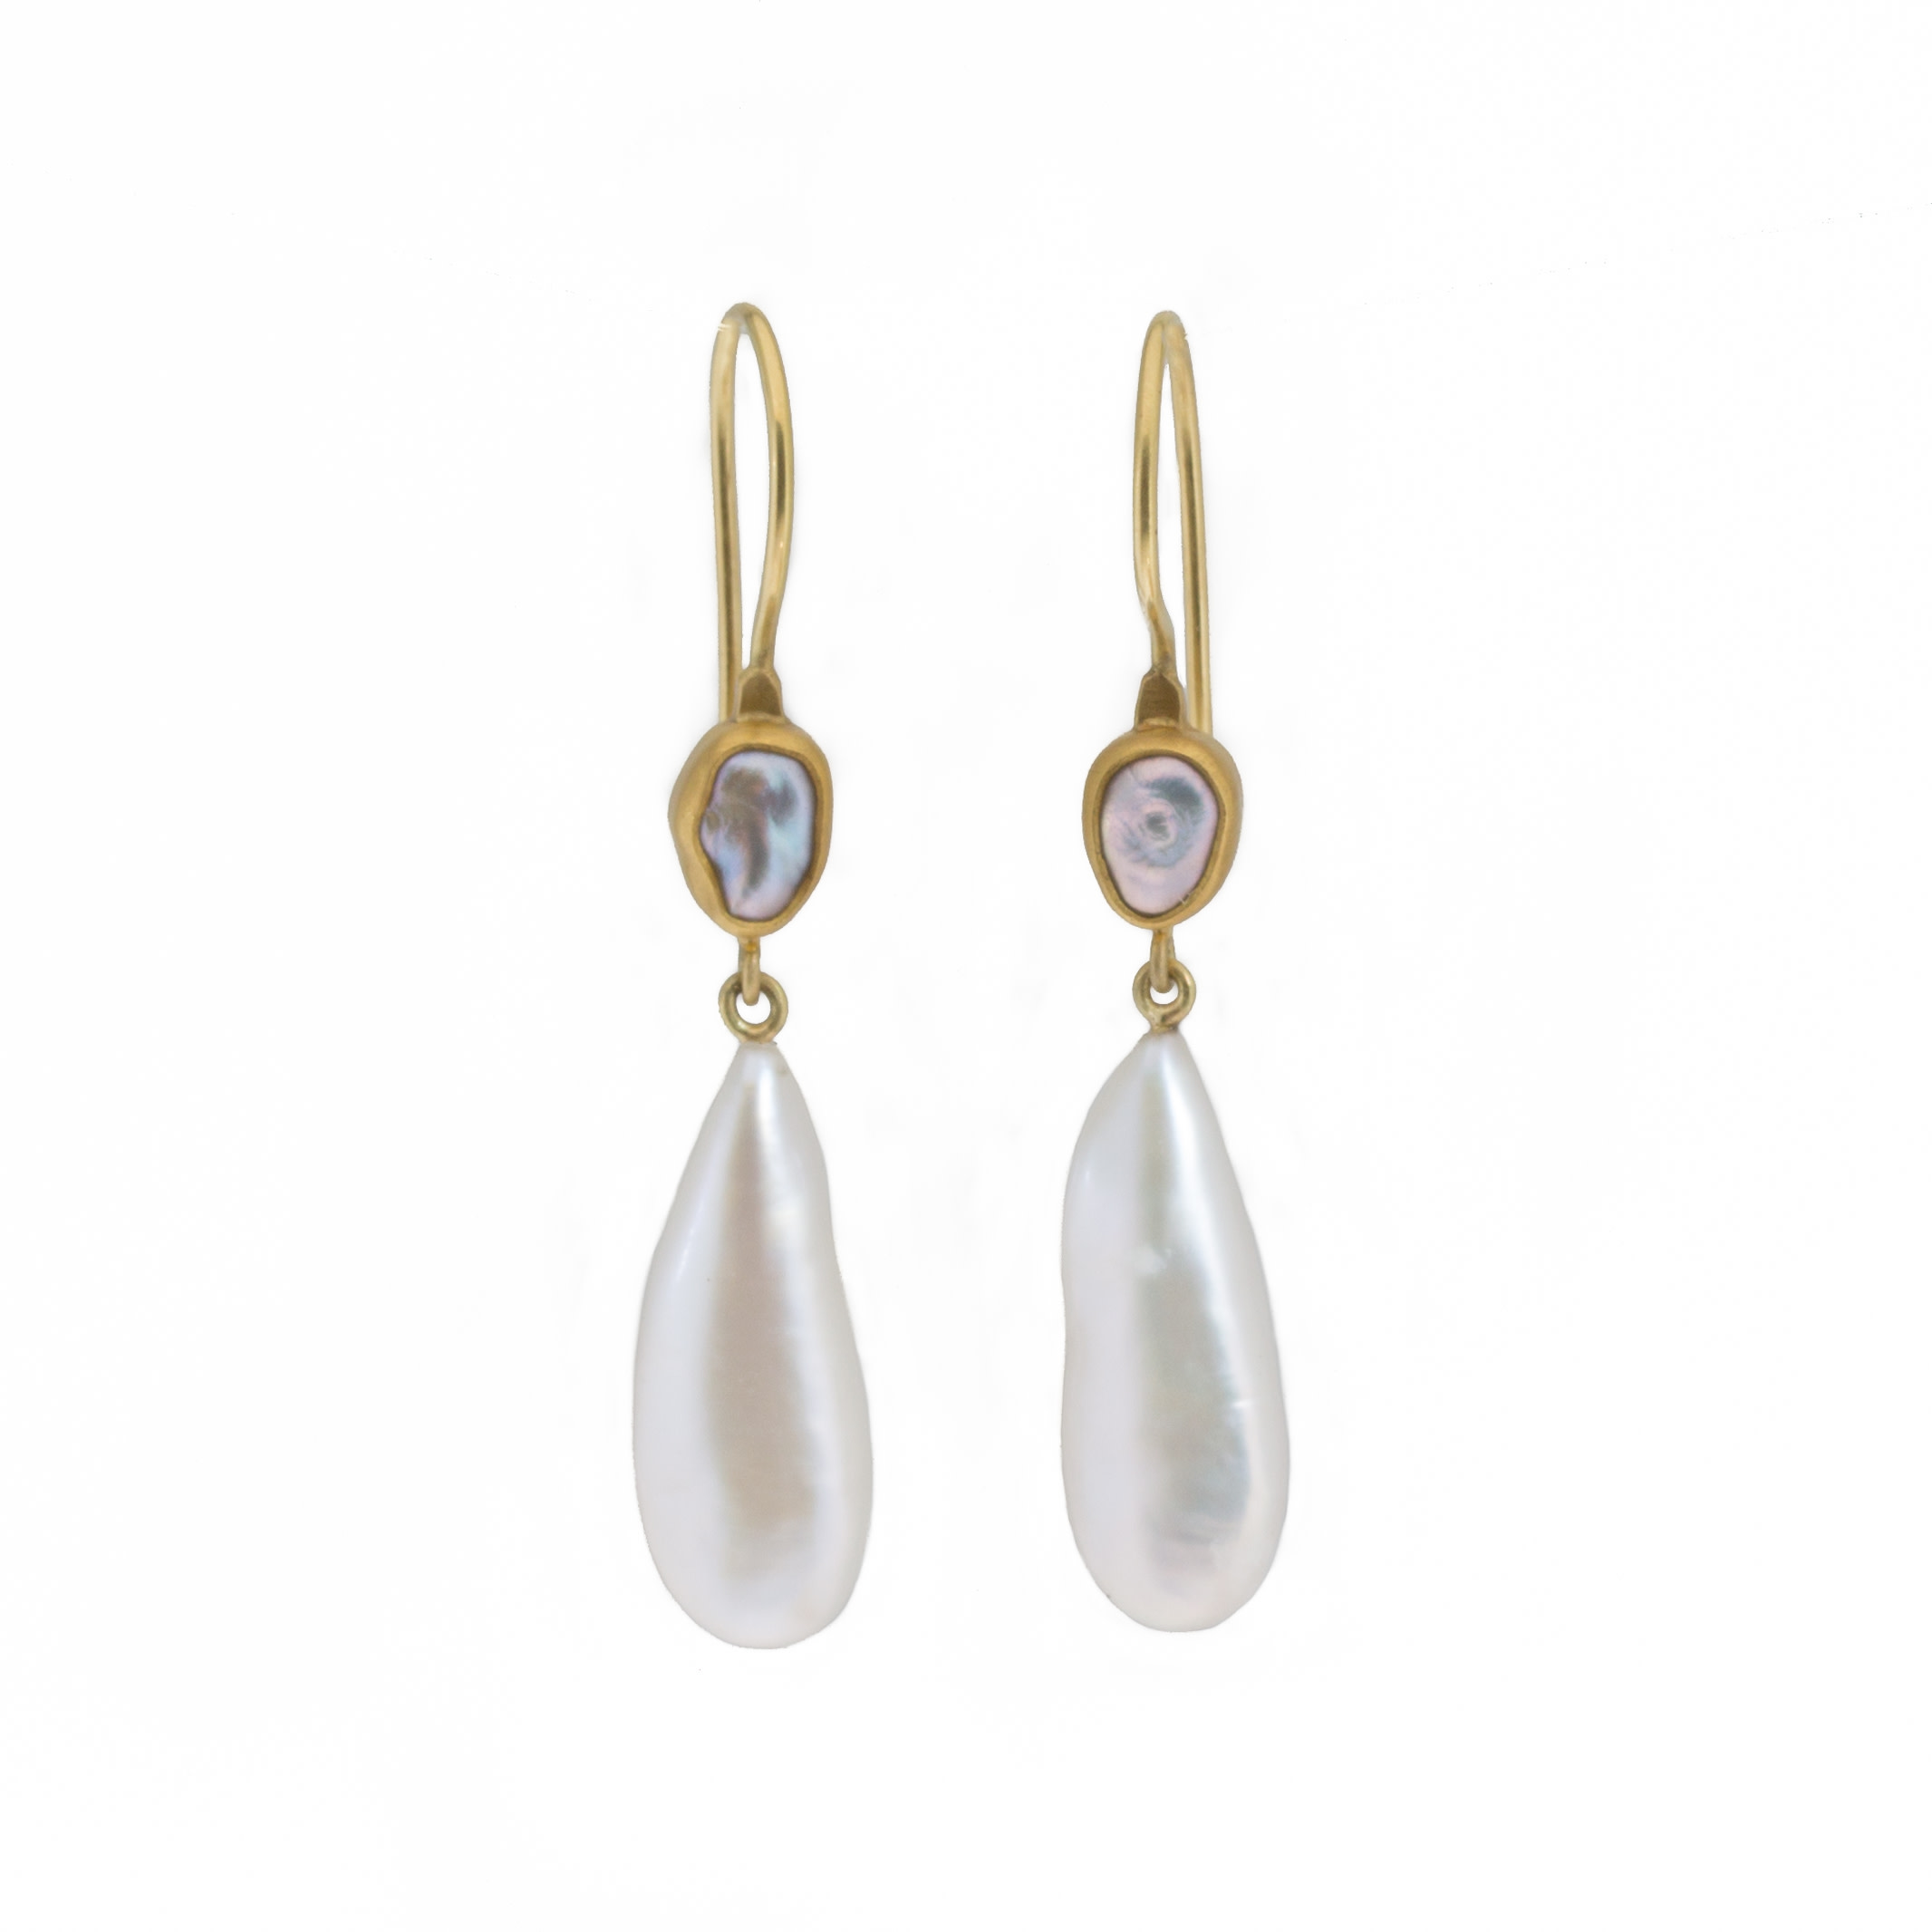 Double Pearl Drop Earrings in 22k and 18k Yellow Gold